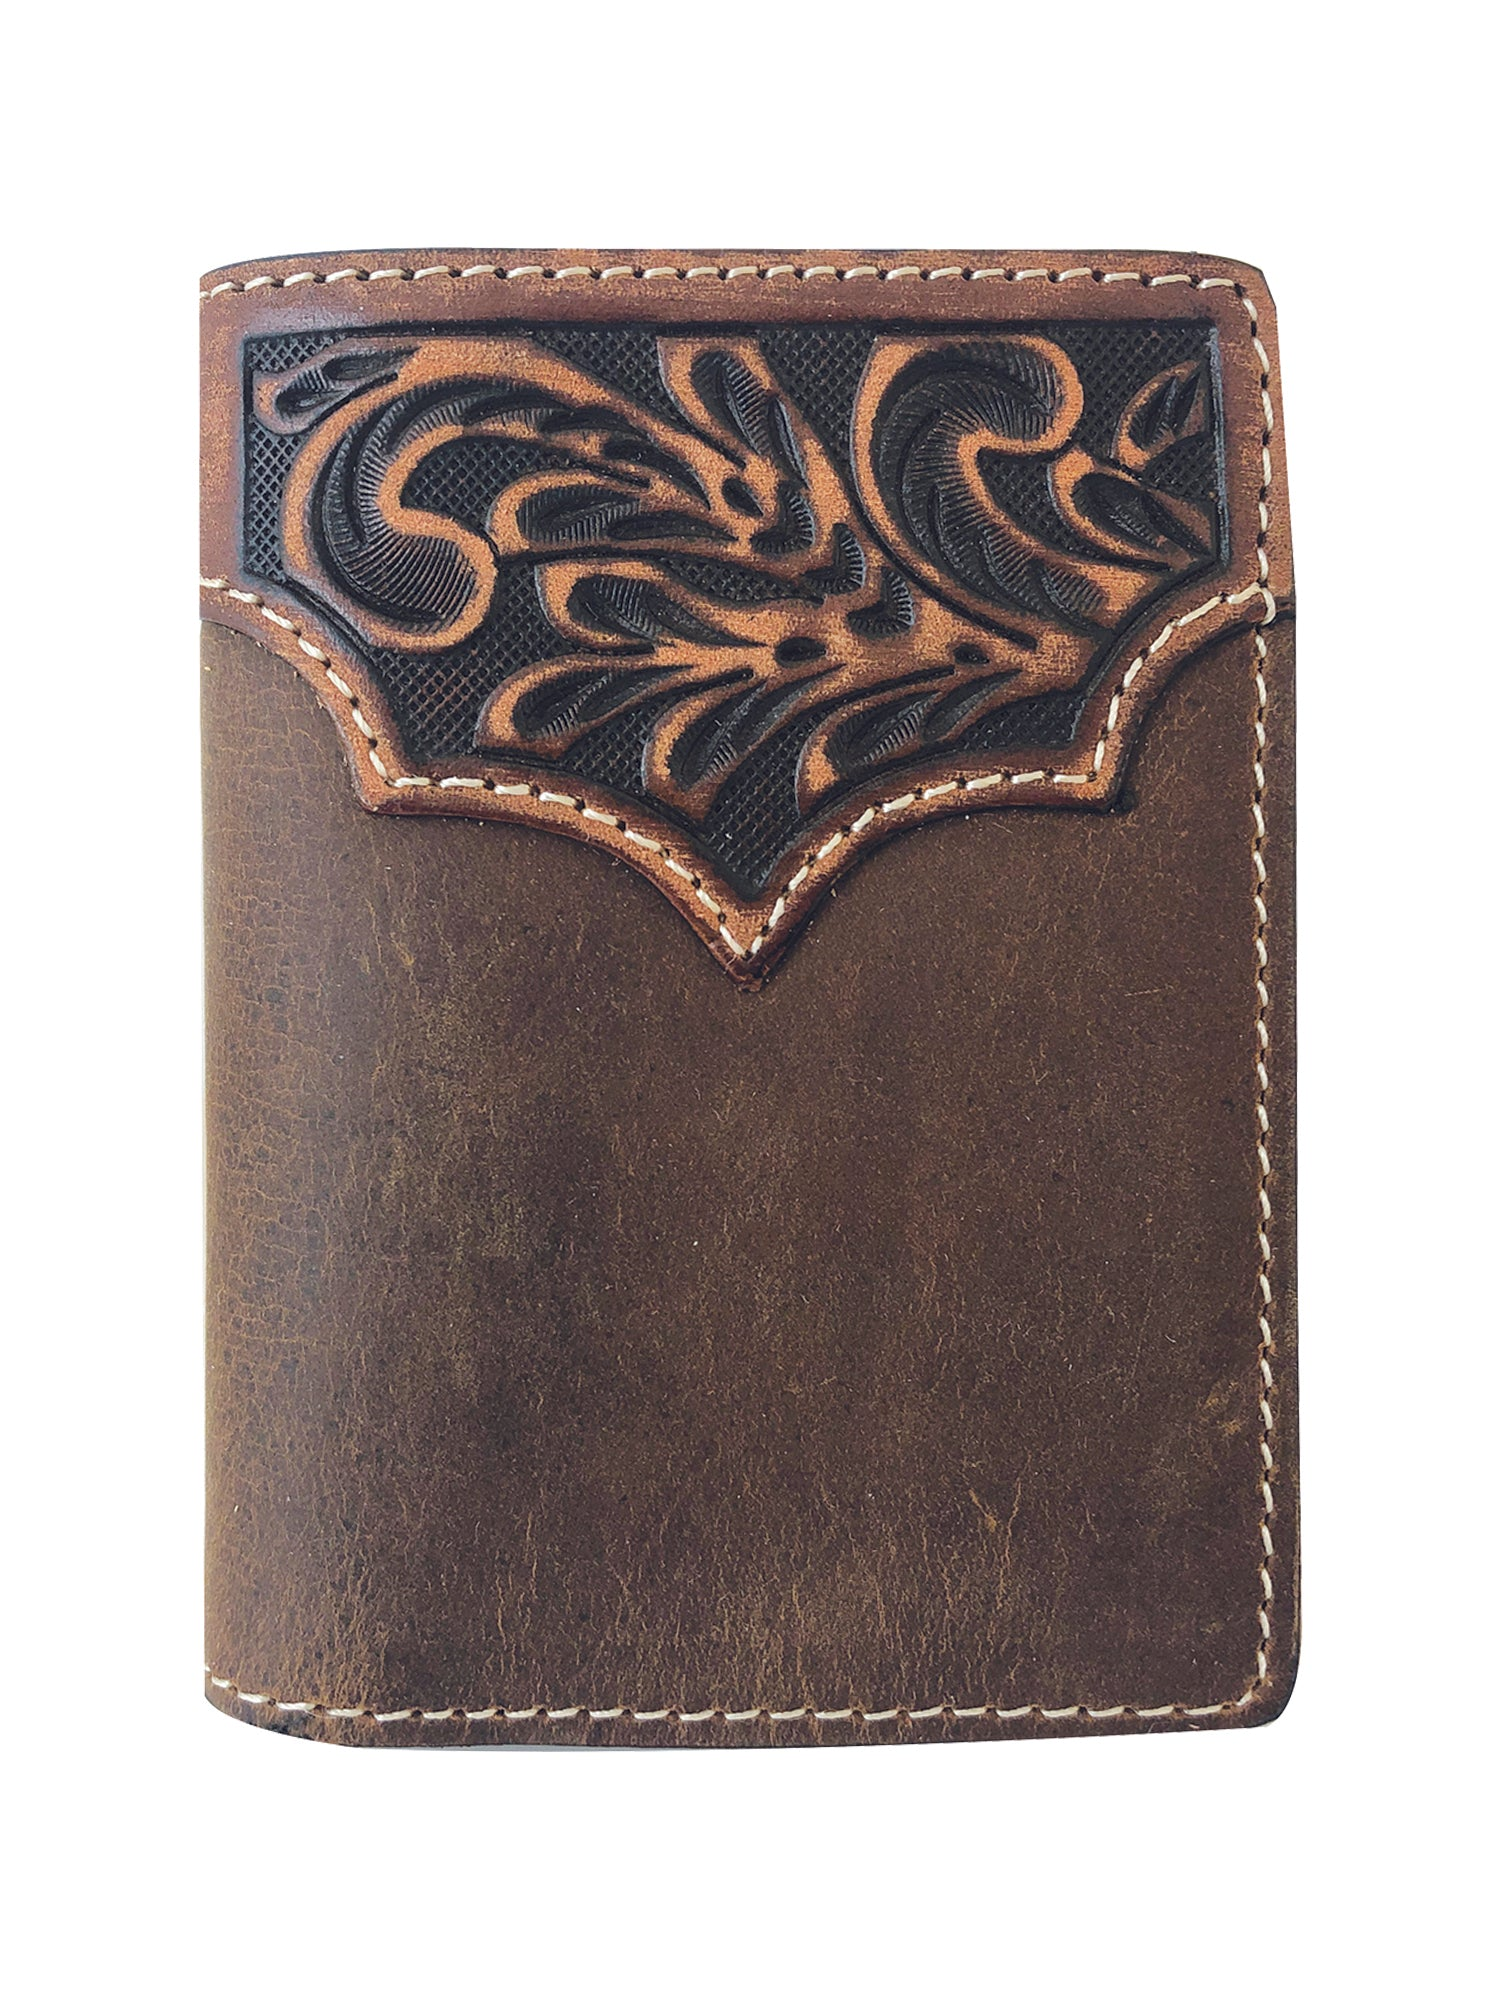 Roper Distress Crazyhorse Leather Trifold Wallet_1